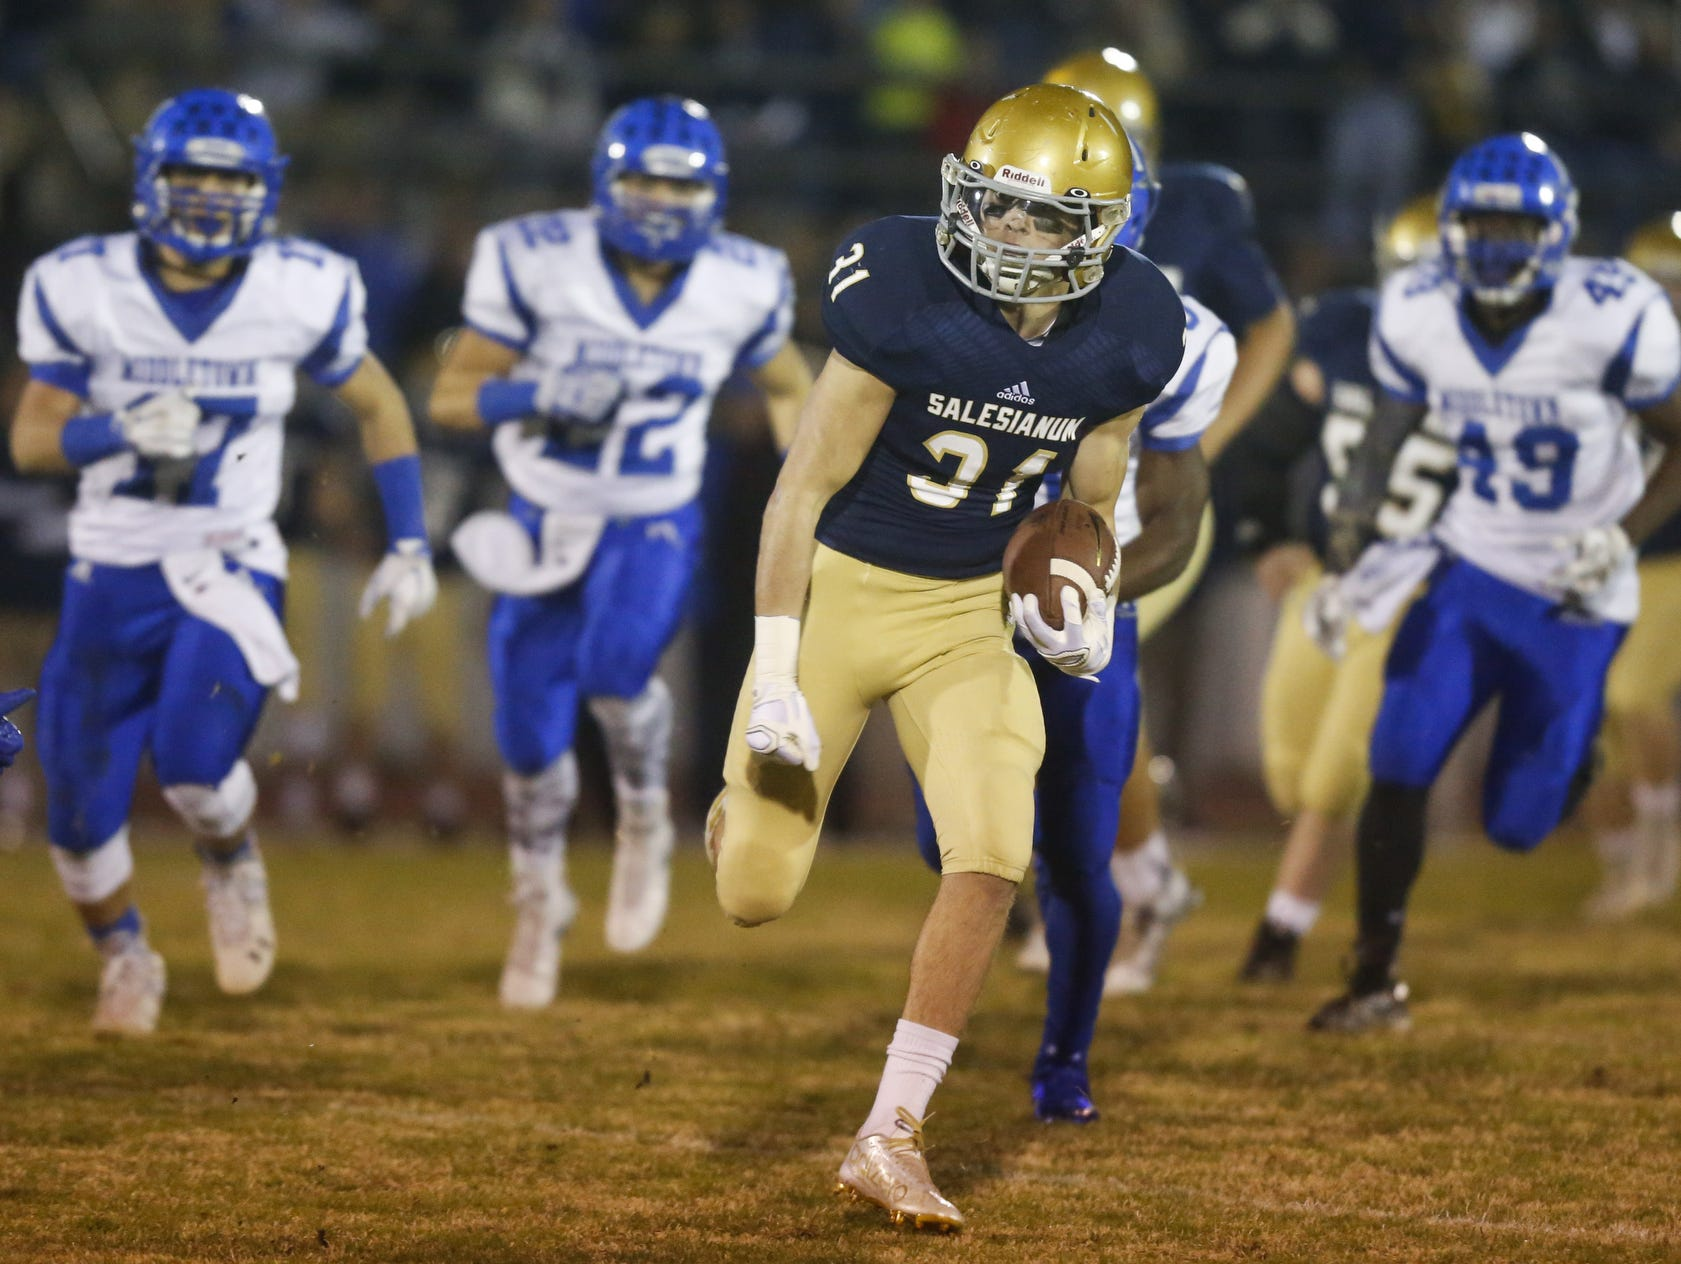 Salesianum's Zachary Jarome sets up the first Sals touchdown with a 55-yard run in the first quarter against Middletown in a DIAA Division I state tournament semifinal at Baynard Stadium Friday.